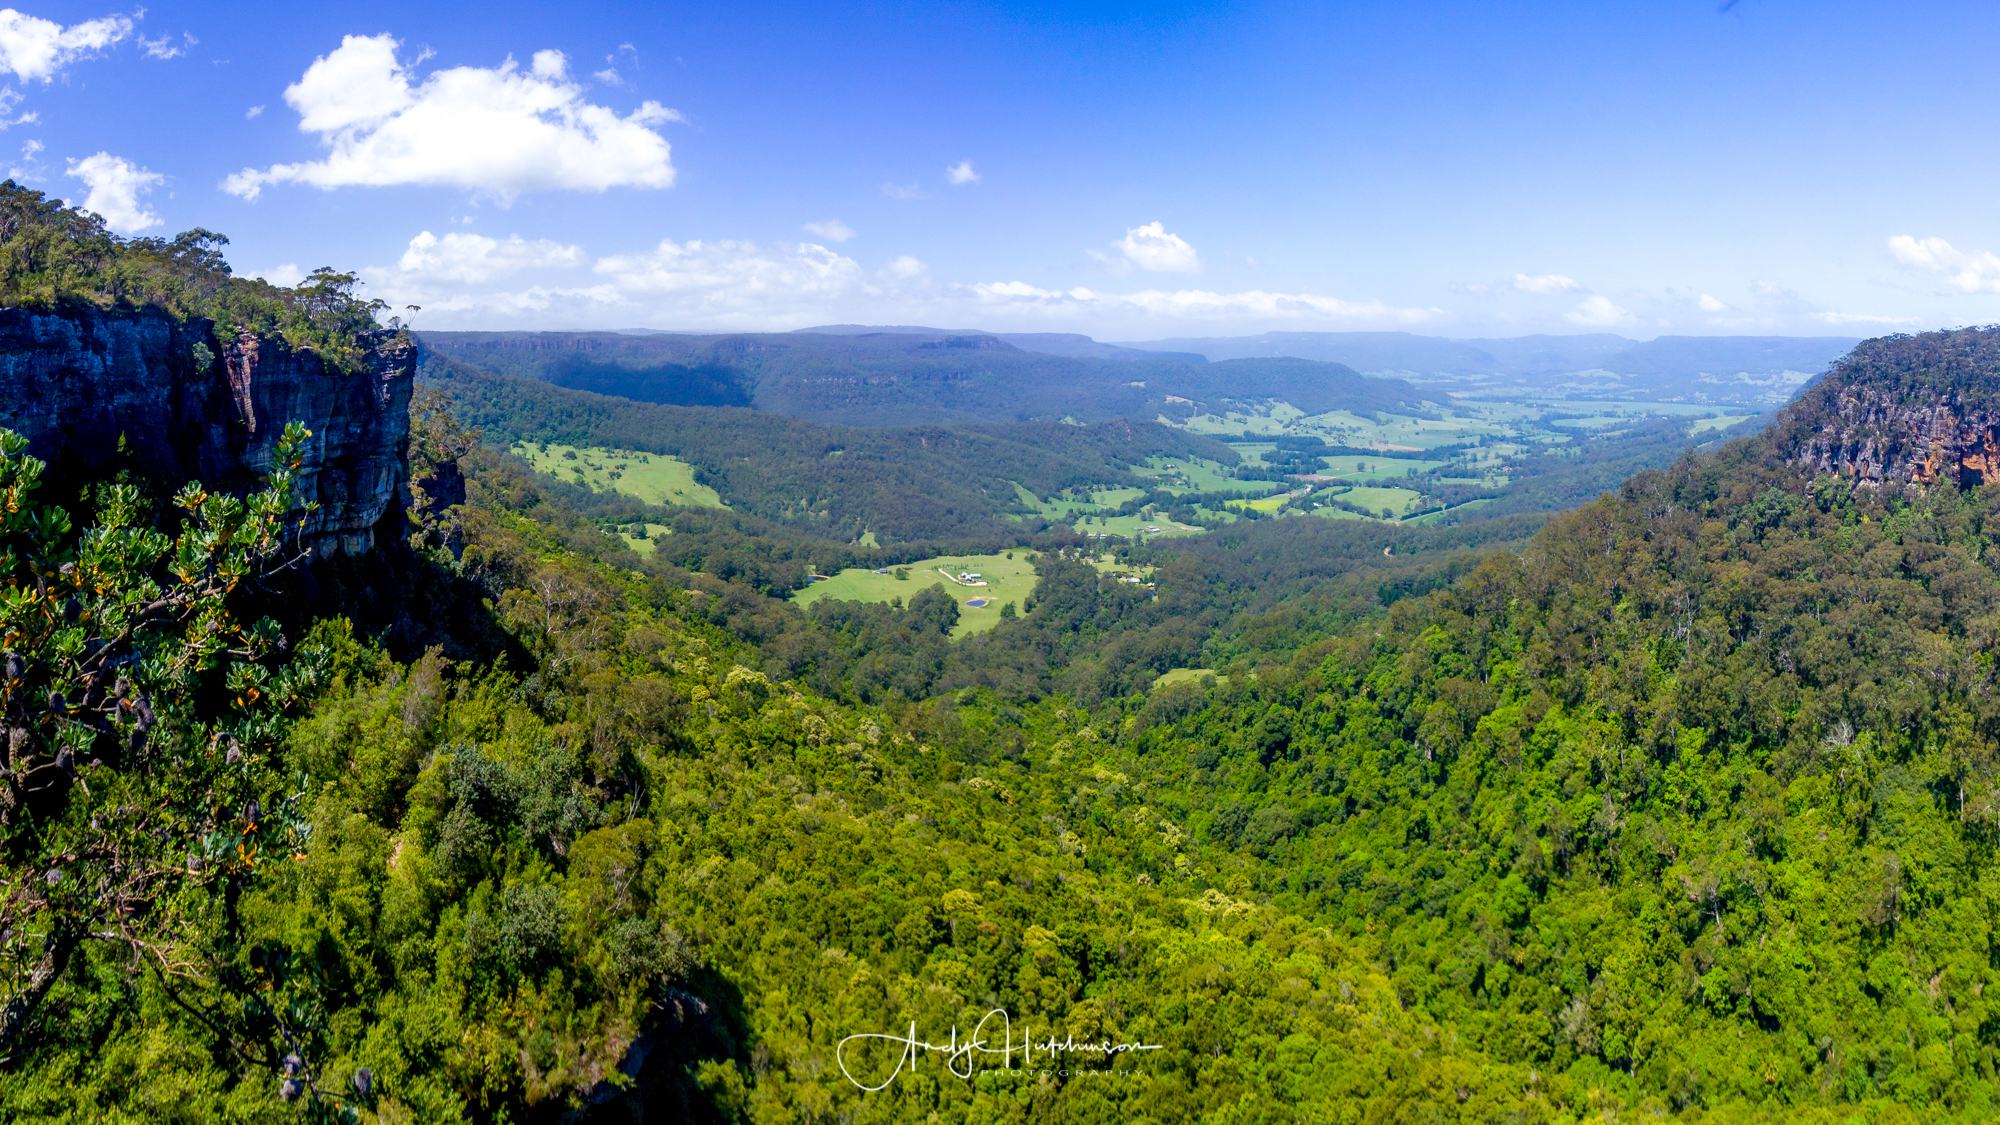 The Manning Lookout is a short walk and an incredible view down across Kangaroo Valley and beyond to the escarpment edges.